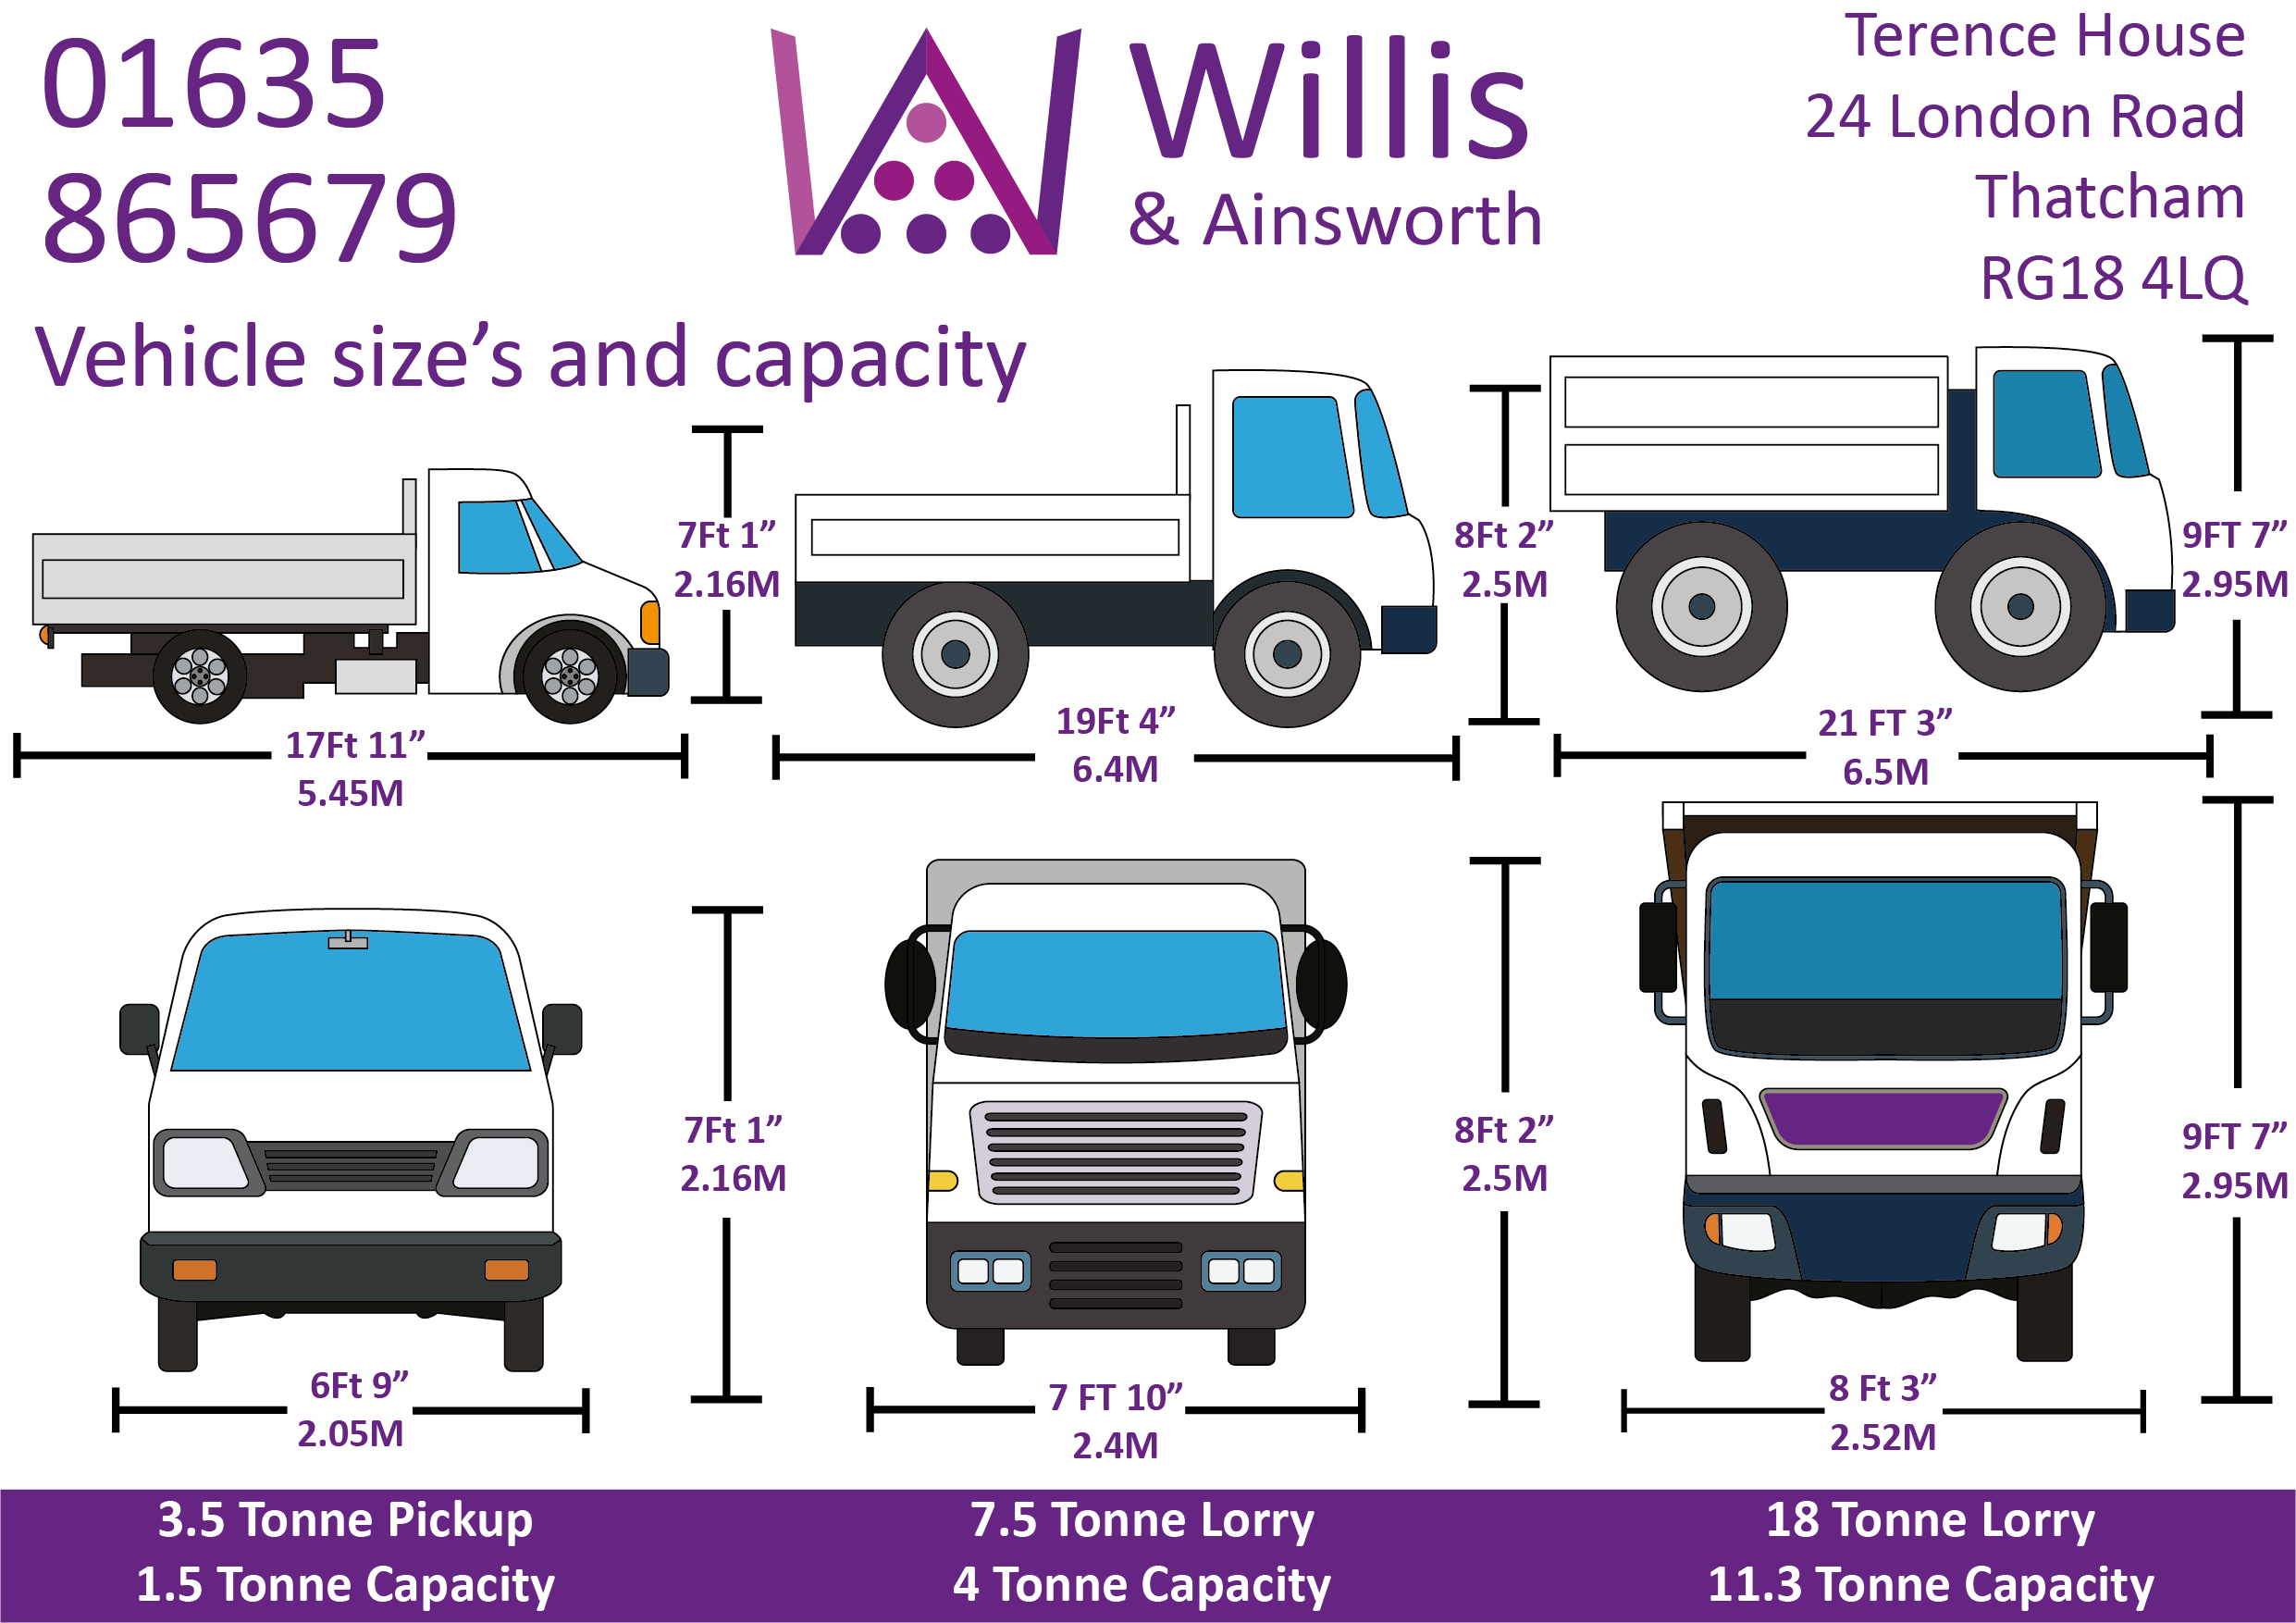 Willis and ainsworth Vehicle sizes